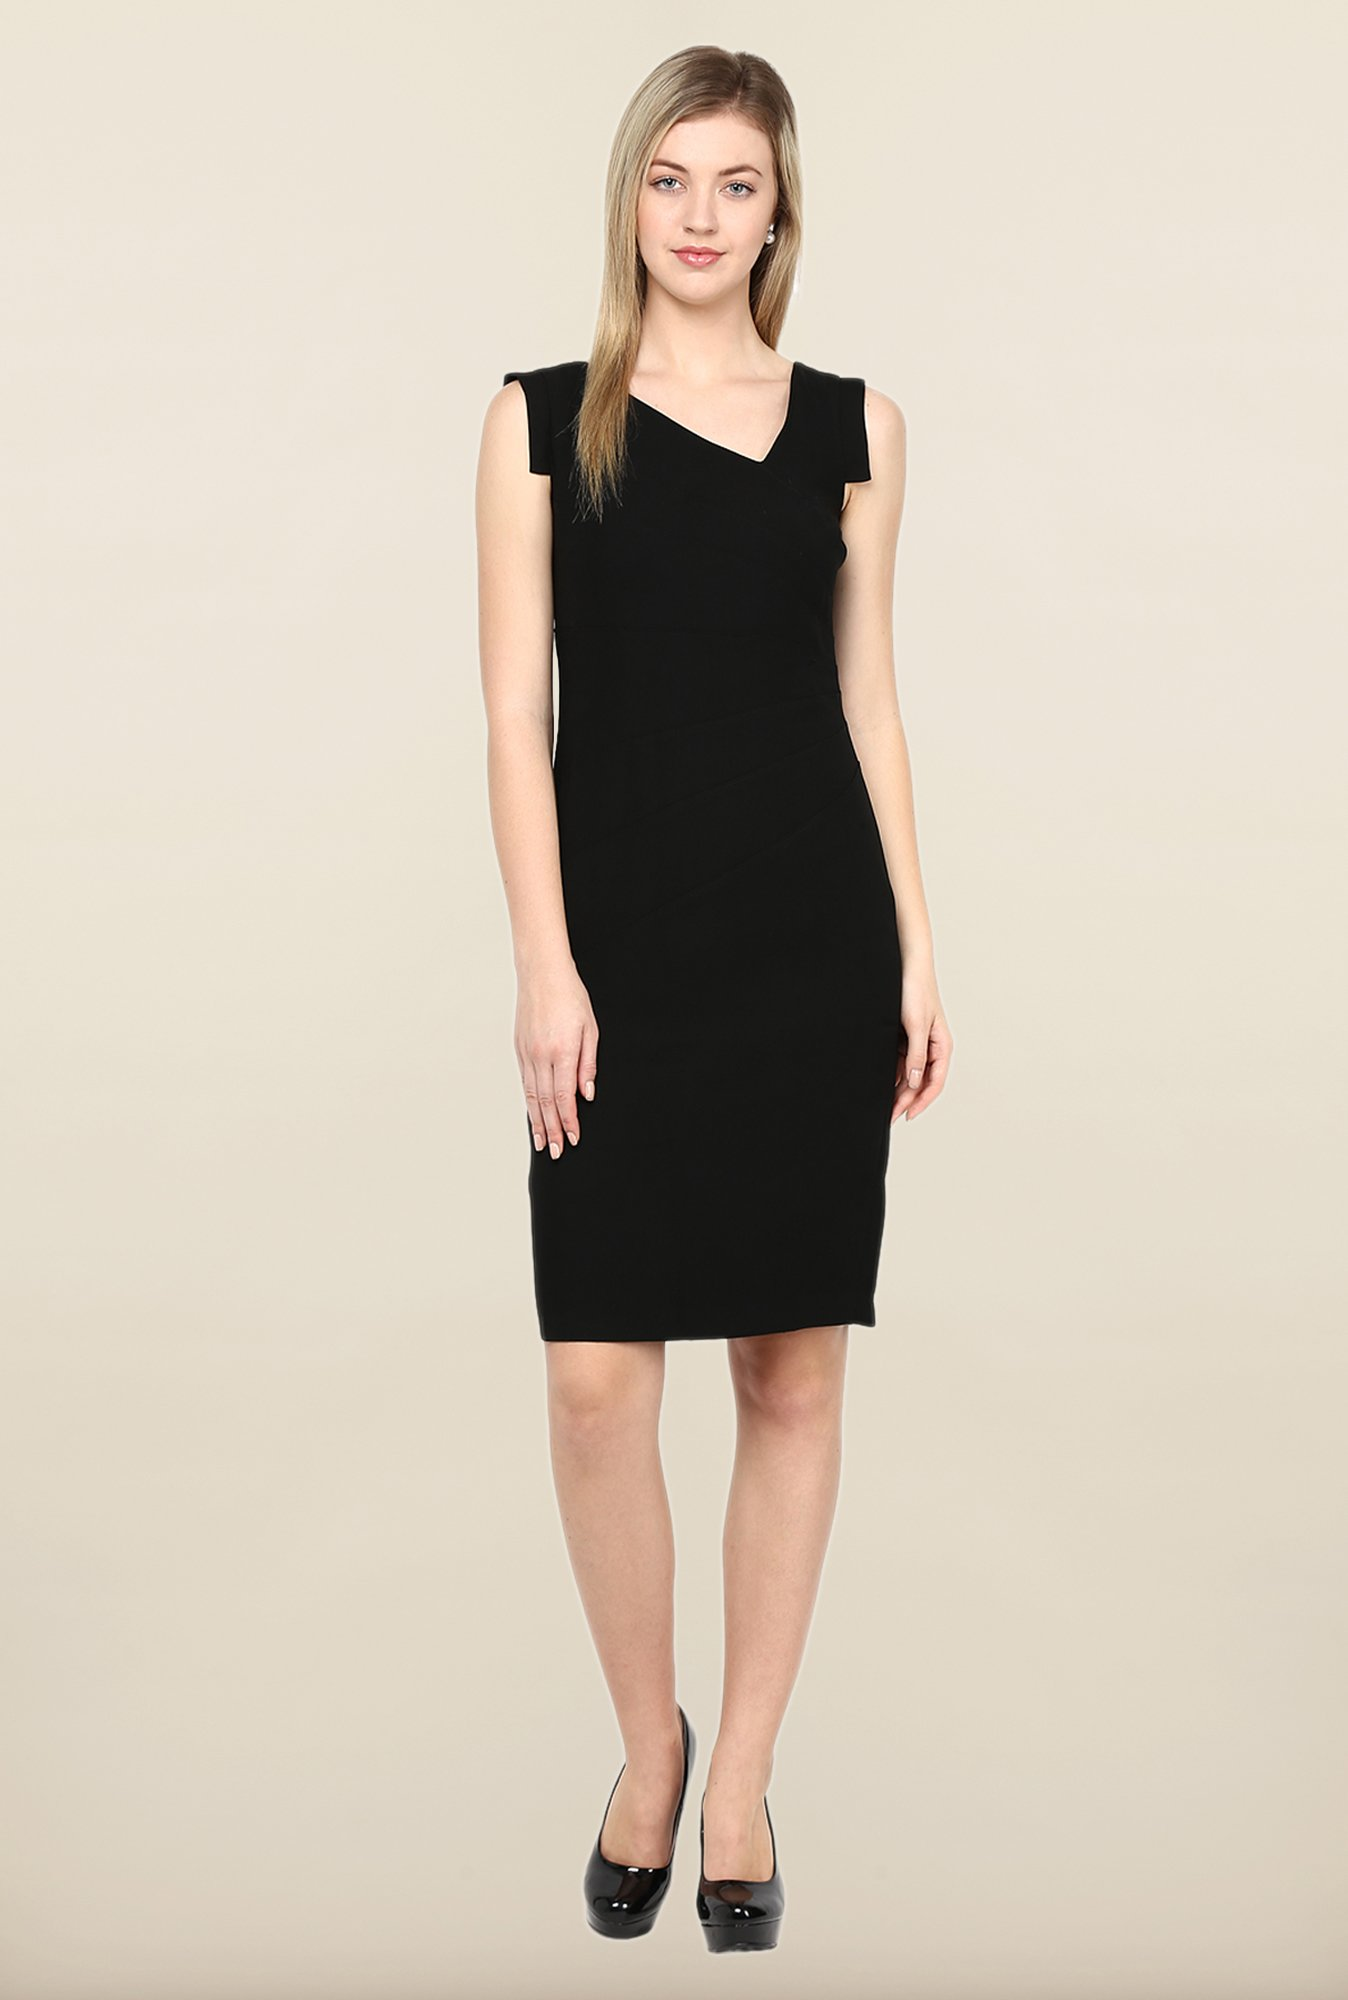 Avirate Black Solid V Neck Casual Dress